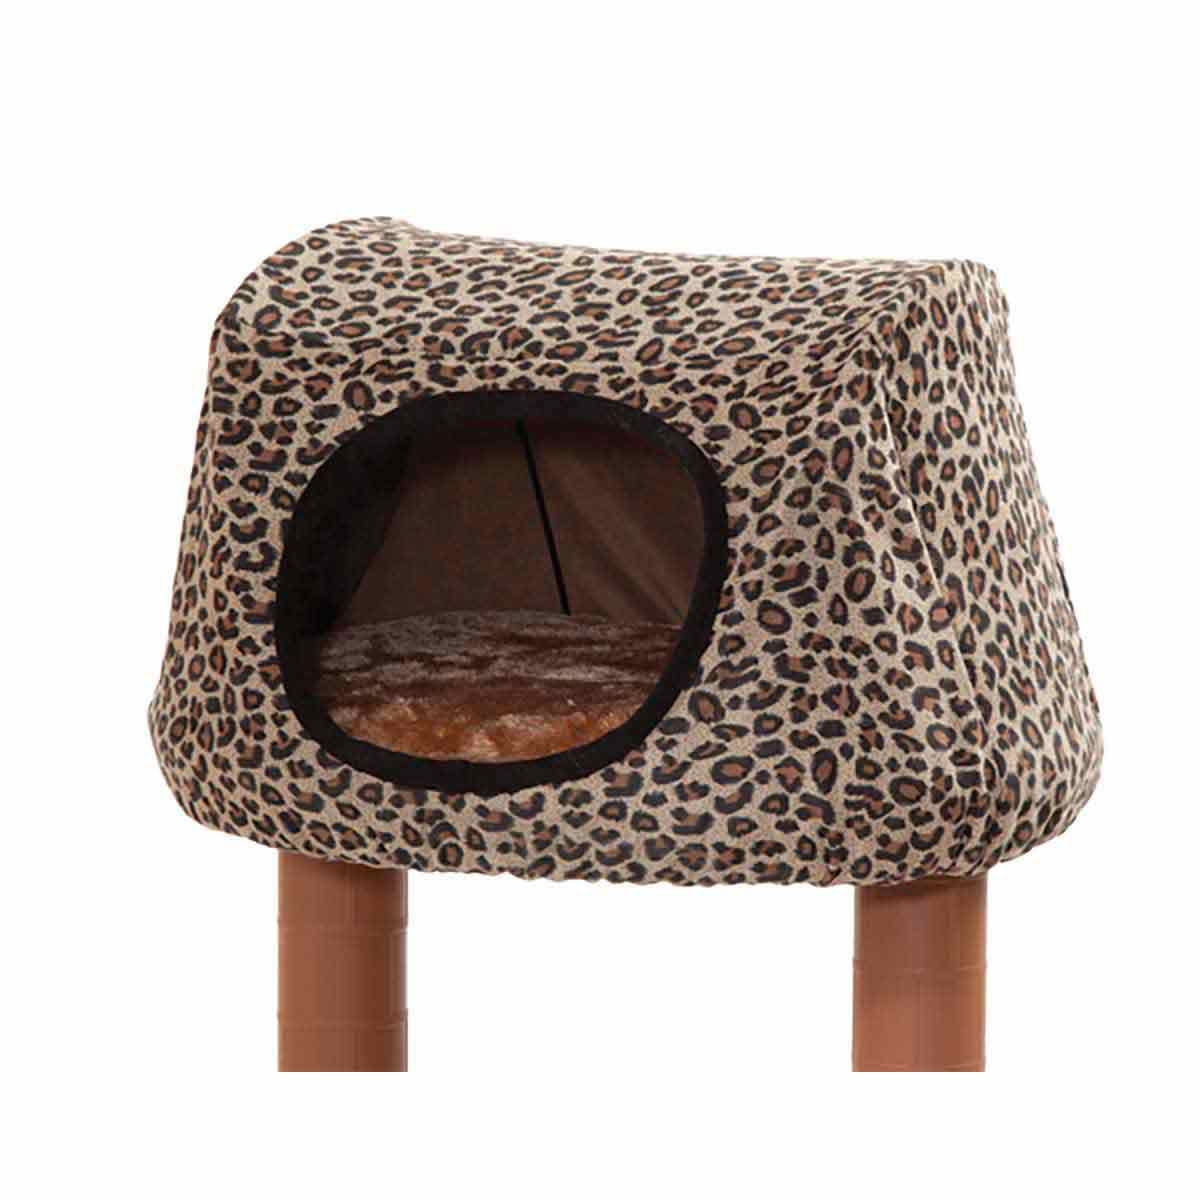 Kitty'scape Penthouse Canopy for Cats